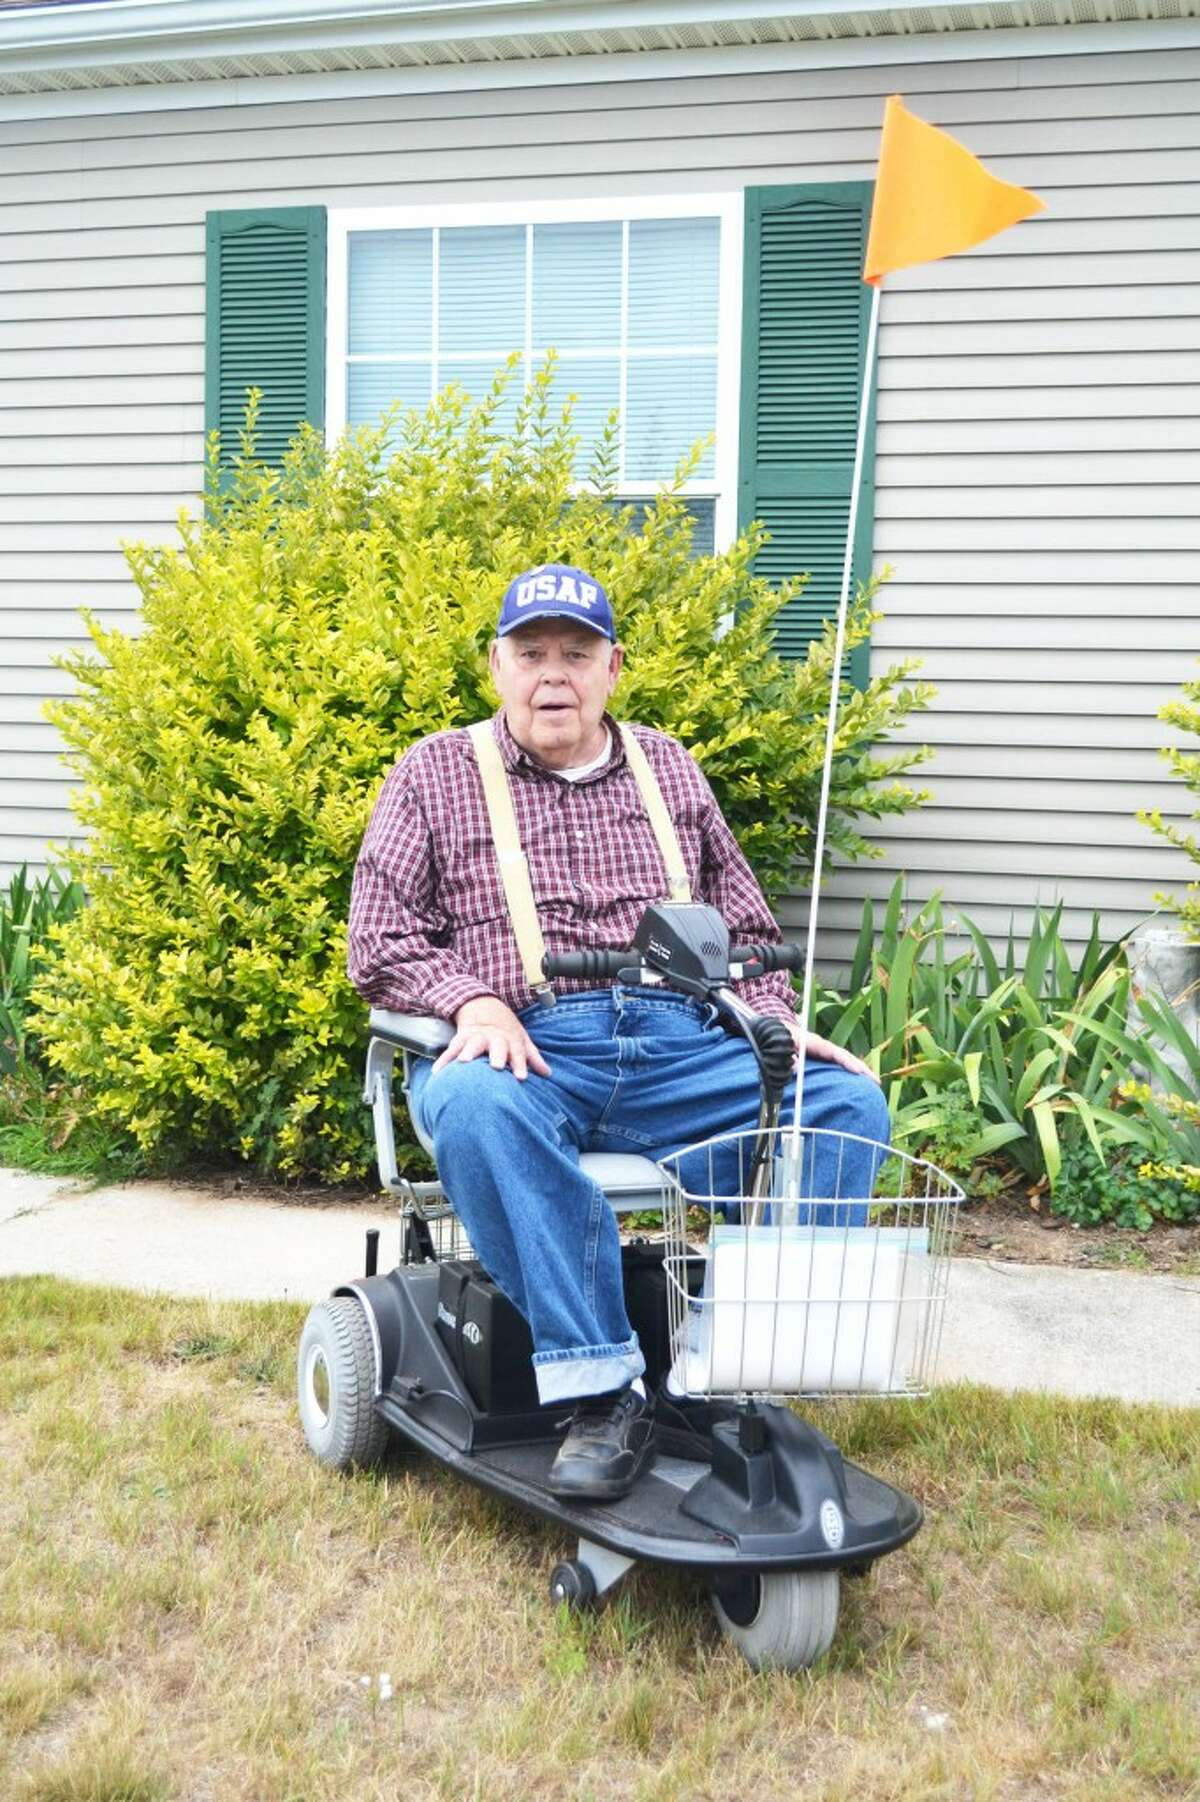 LIMITED MOBILITY: John Harwell's mobility is limited by a progressive nerve condition affecting his legs.